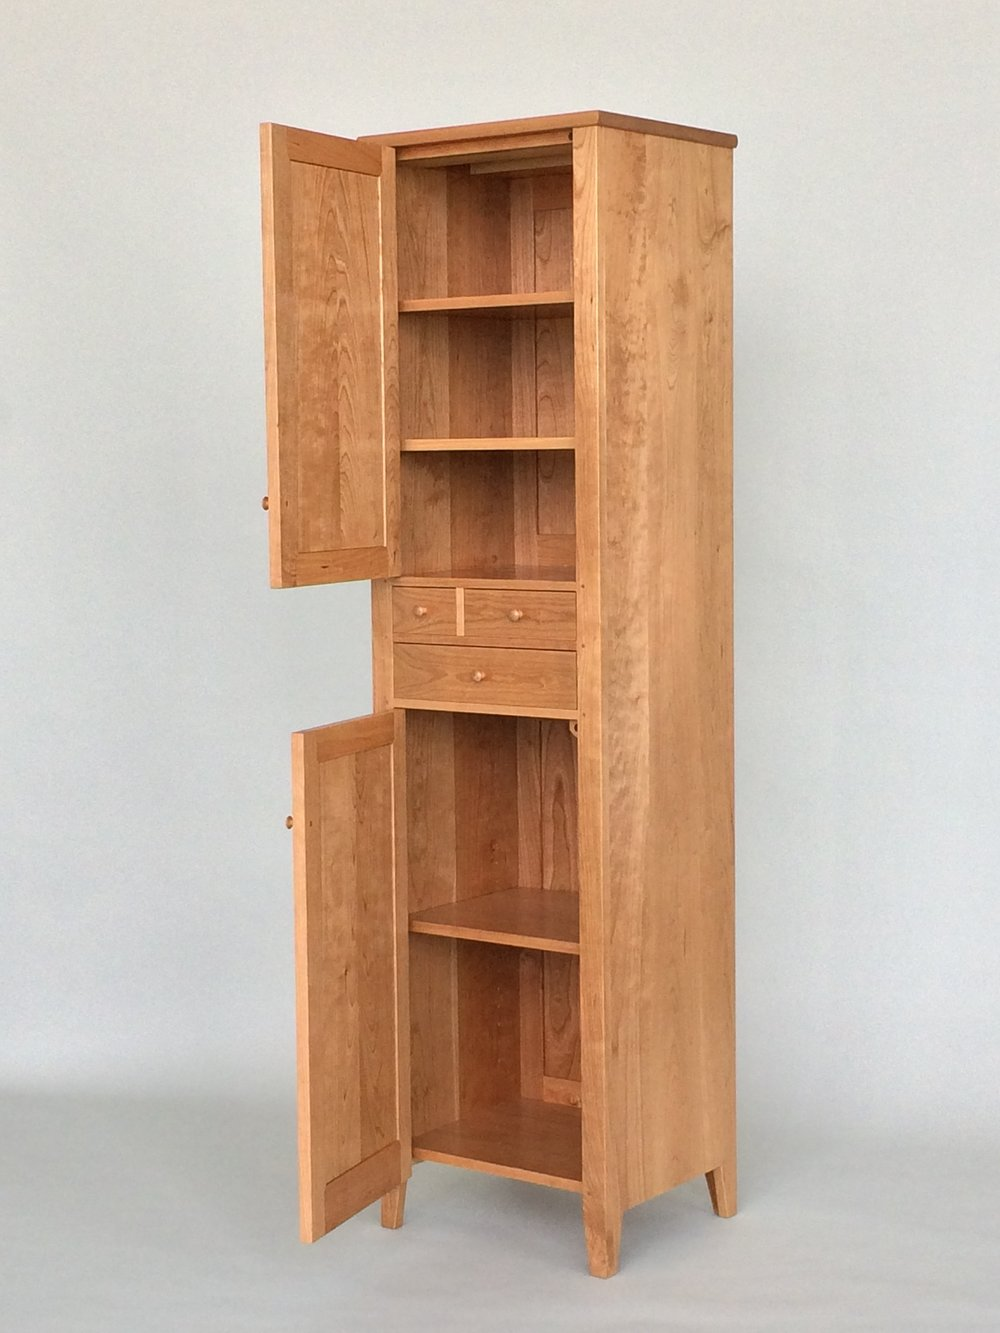 Captivating Shaker Chimney Cupboard